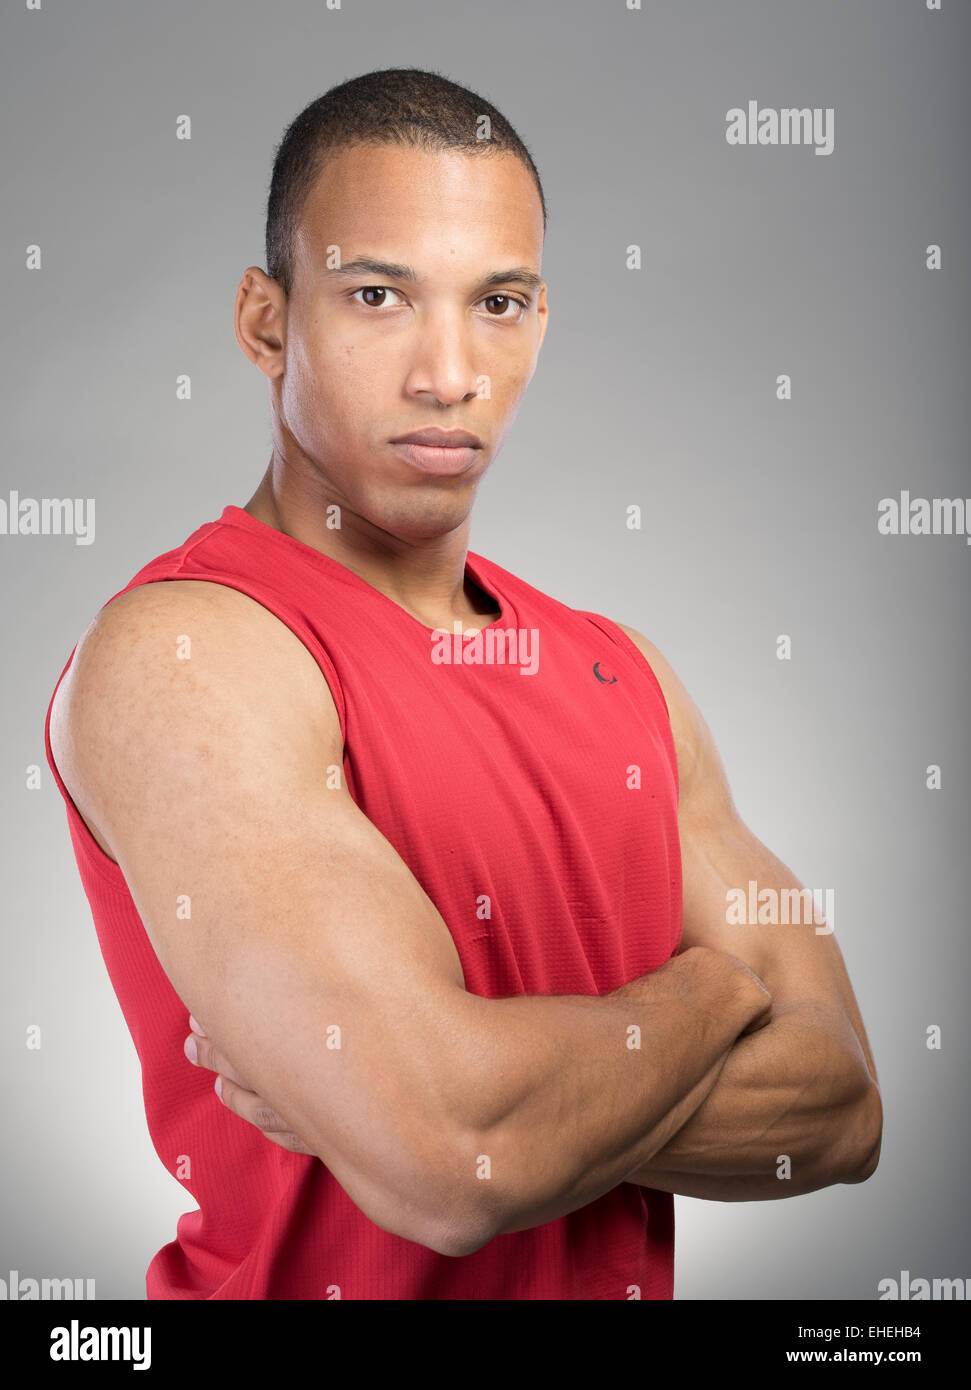 Muscular man wearing red tank top vest Stock Photo